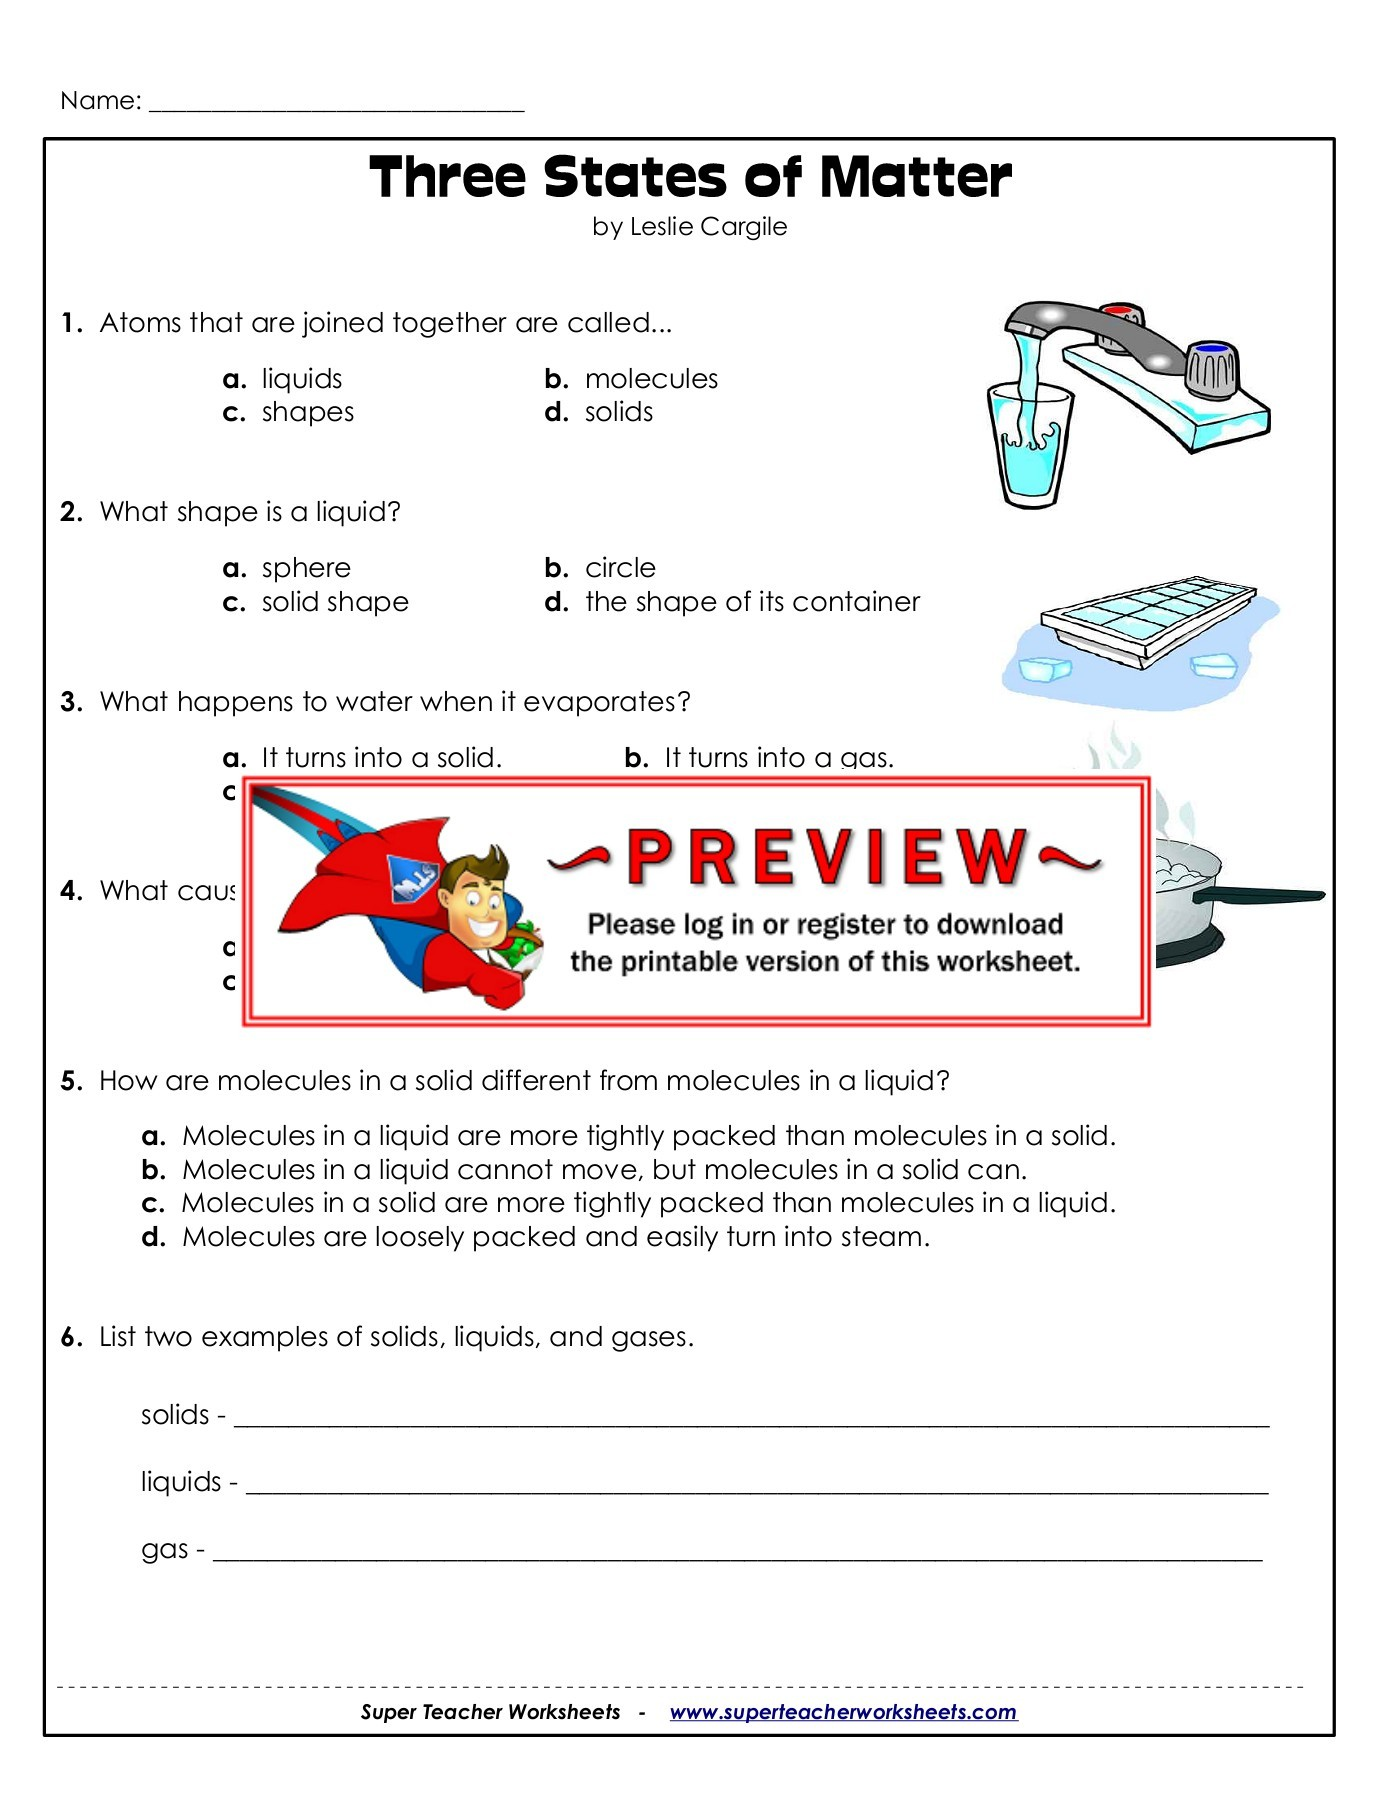 hight resolution of Name: Three States of Matter - Super Teacher Worksheets Pages 1 - 3 - Flip  PDF Download   FlipHTML5